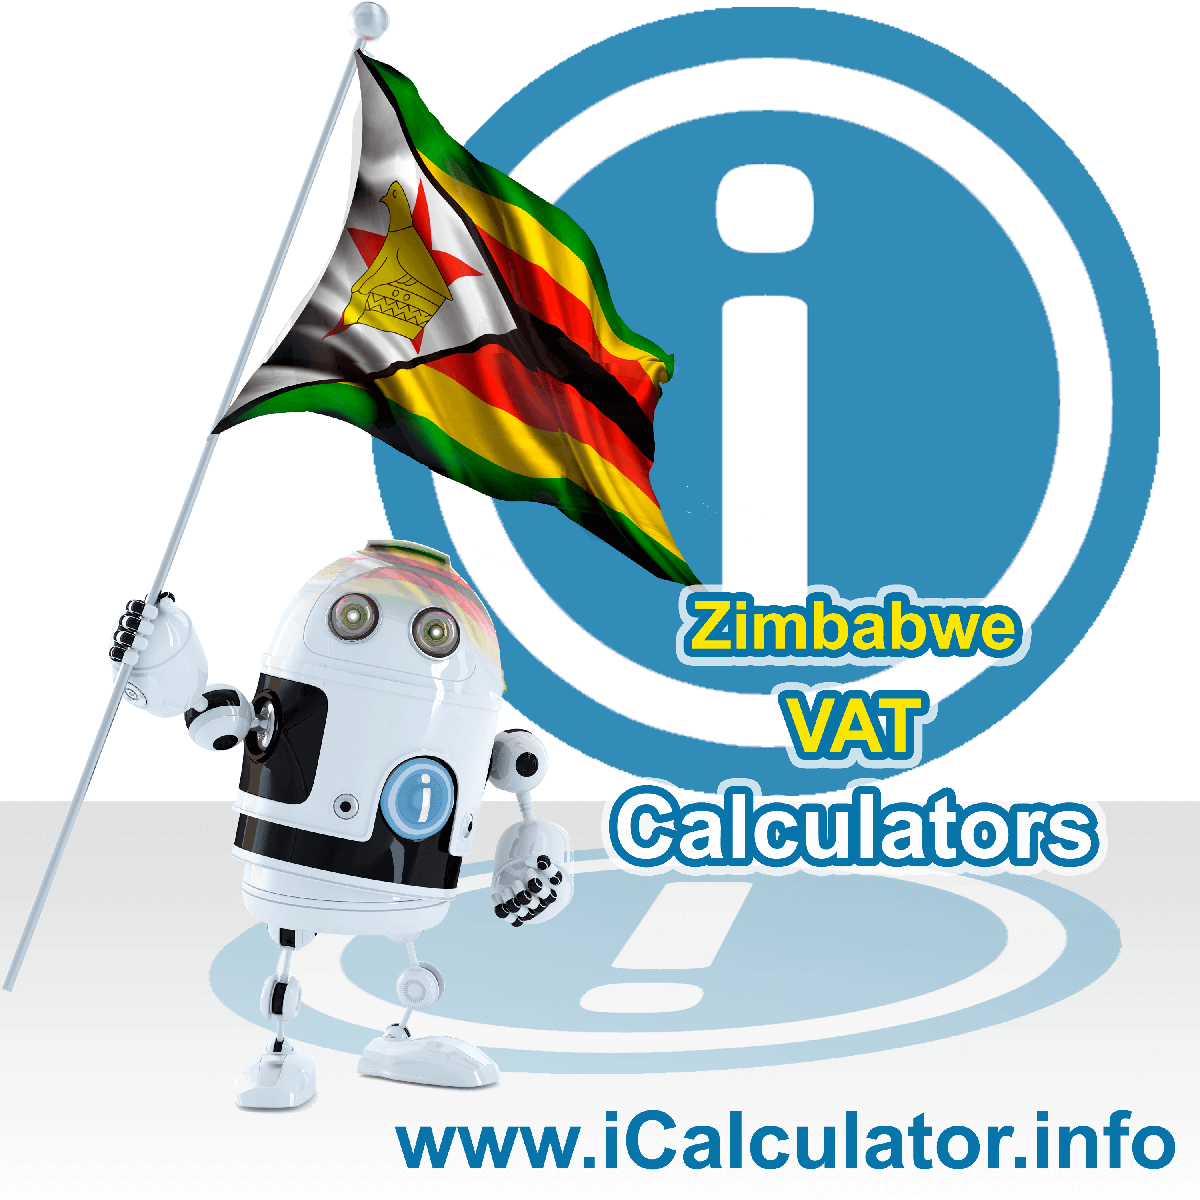 Zimbabwe VAT Calculator. This image shows the Zimbabwe flag and information relating to the VAT formula used for calculating Value Added Tax in Zimbabwe using the Zimbabwe VAT Calculator in 2021